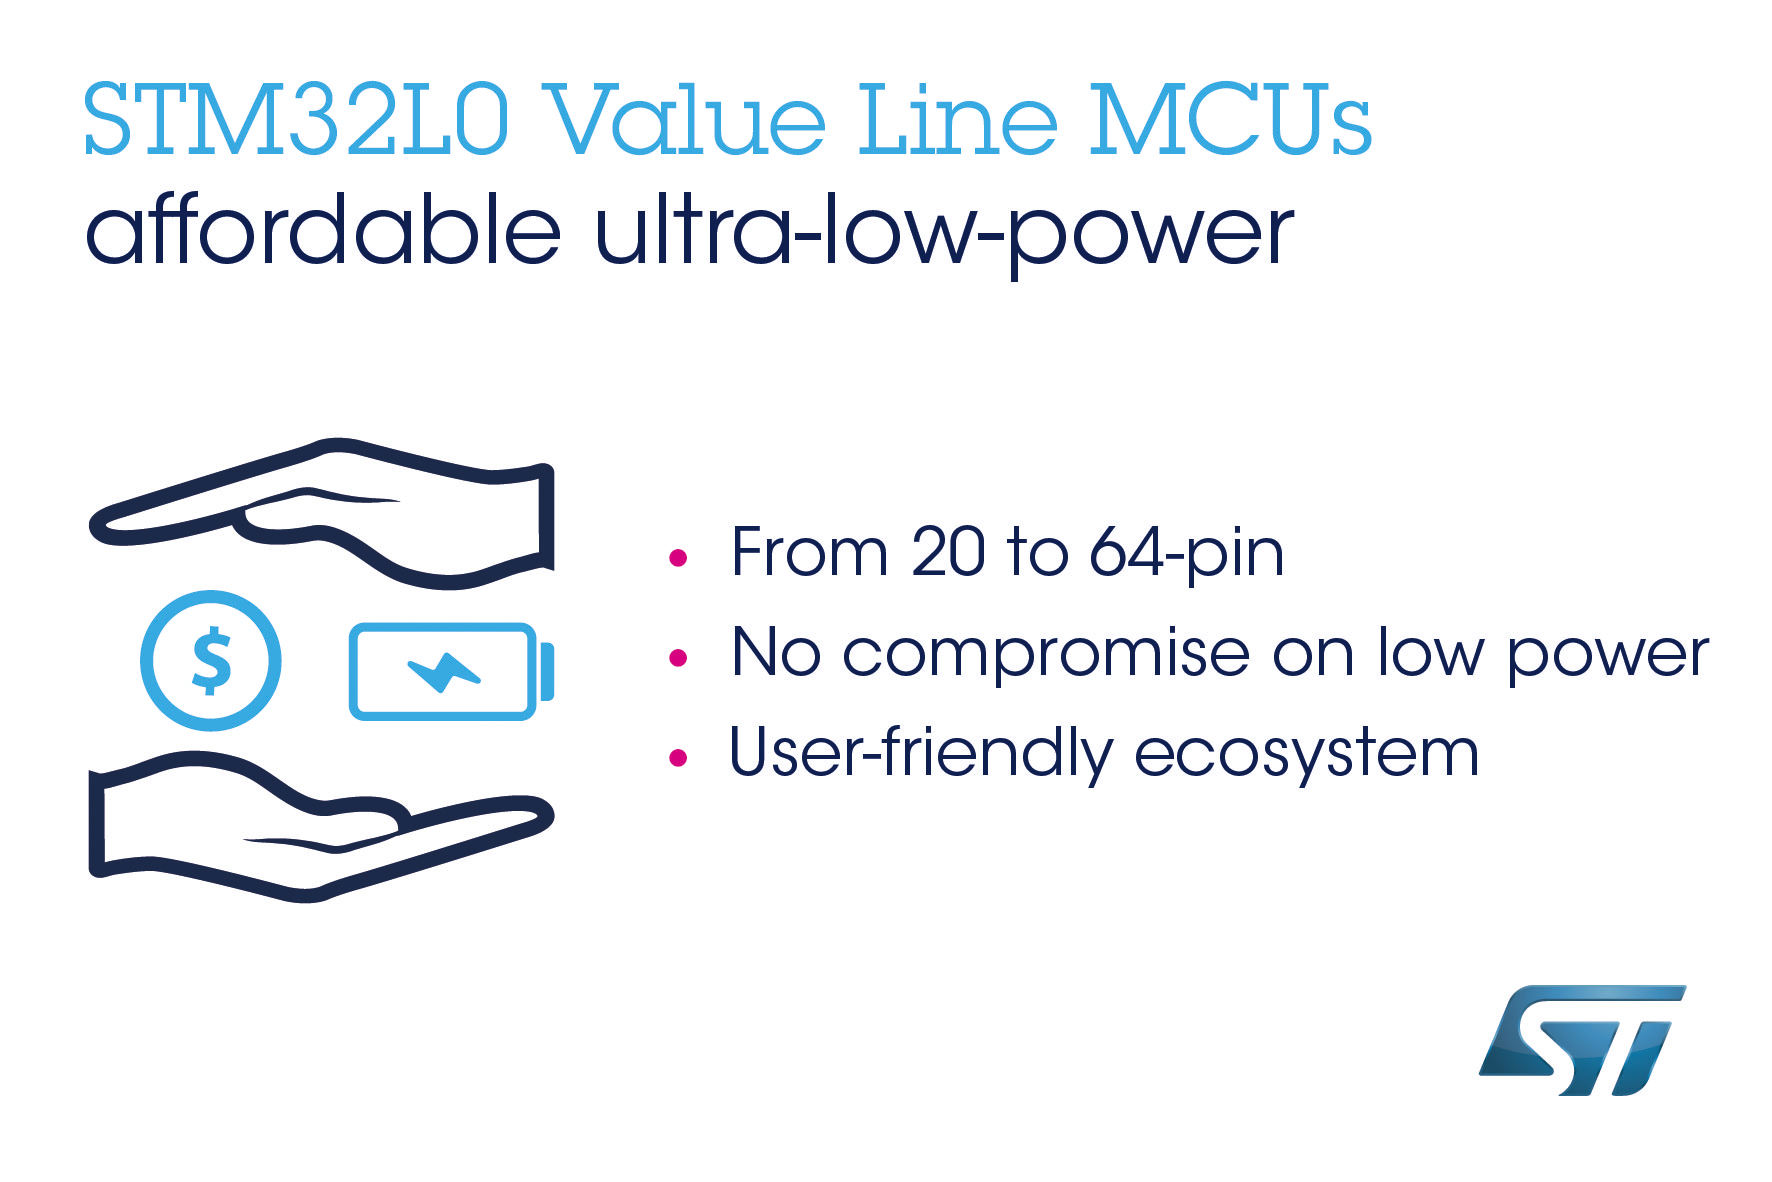 STMicroelectronics Makes Leading Ultra-Low-Power MCU Family Even